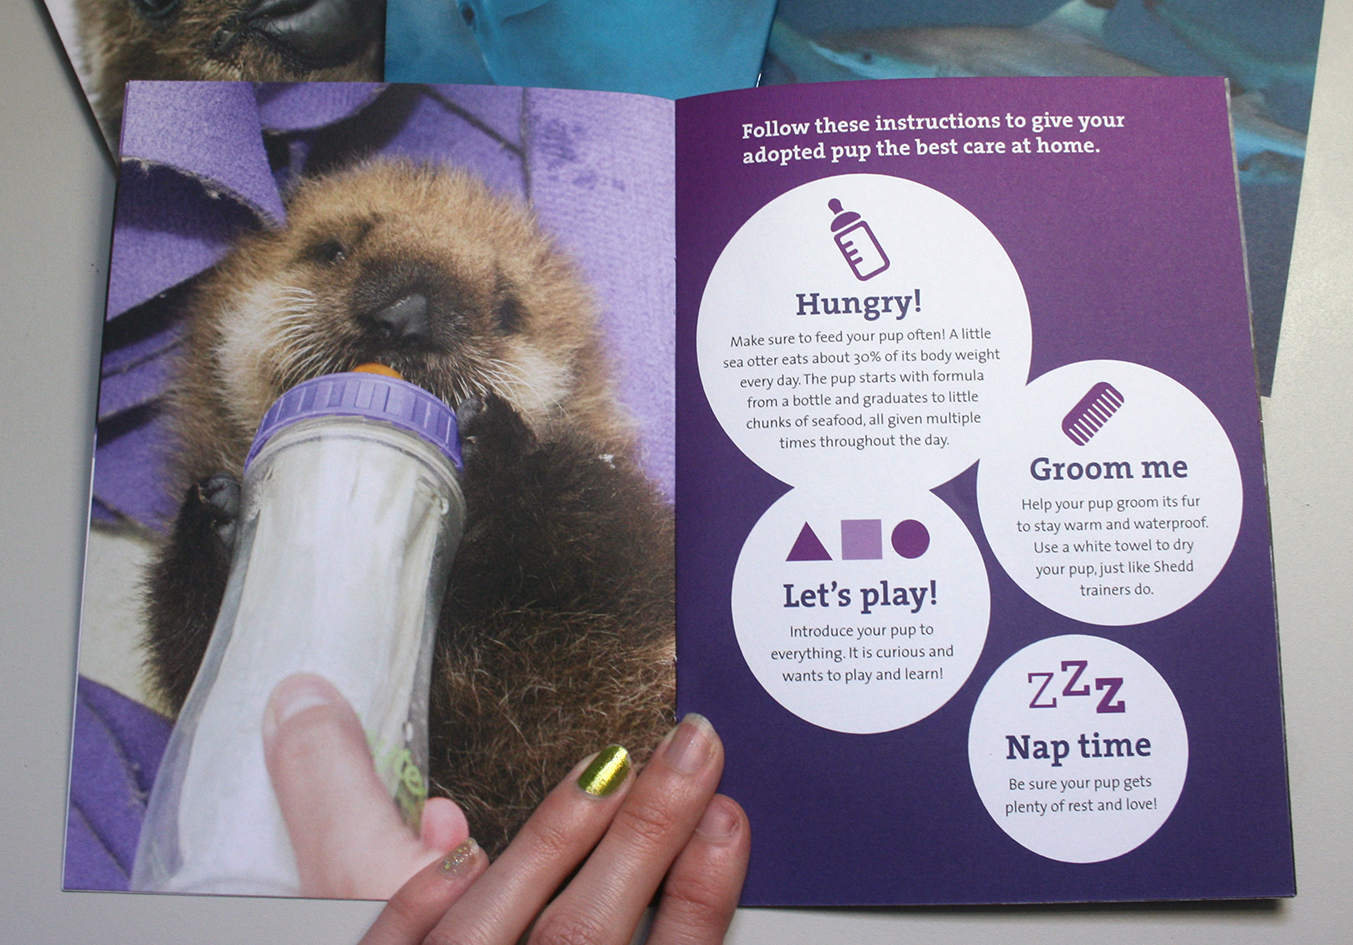 A booklet is shown opened to an informational spread. On the left page is a photo of an otter pup being fed from a bottle. On the right page various tips for taking care of an otter pup are shown in white bubbles along with playful icons. The white bubbles sit on a purple gradiented background.